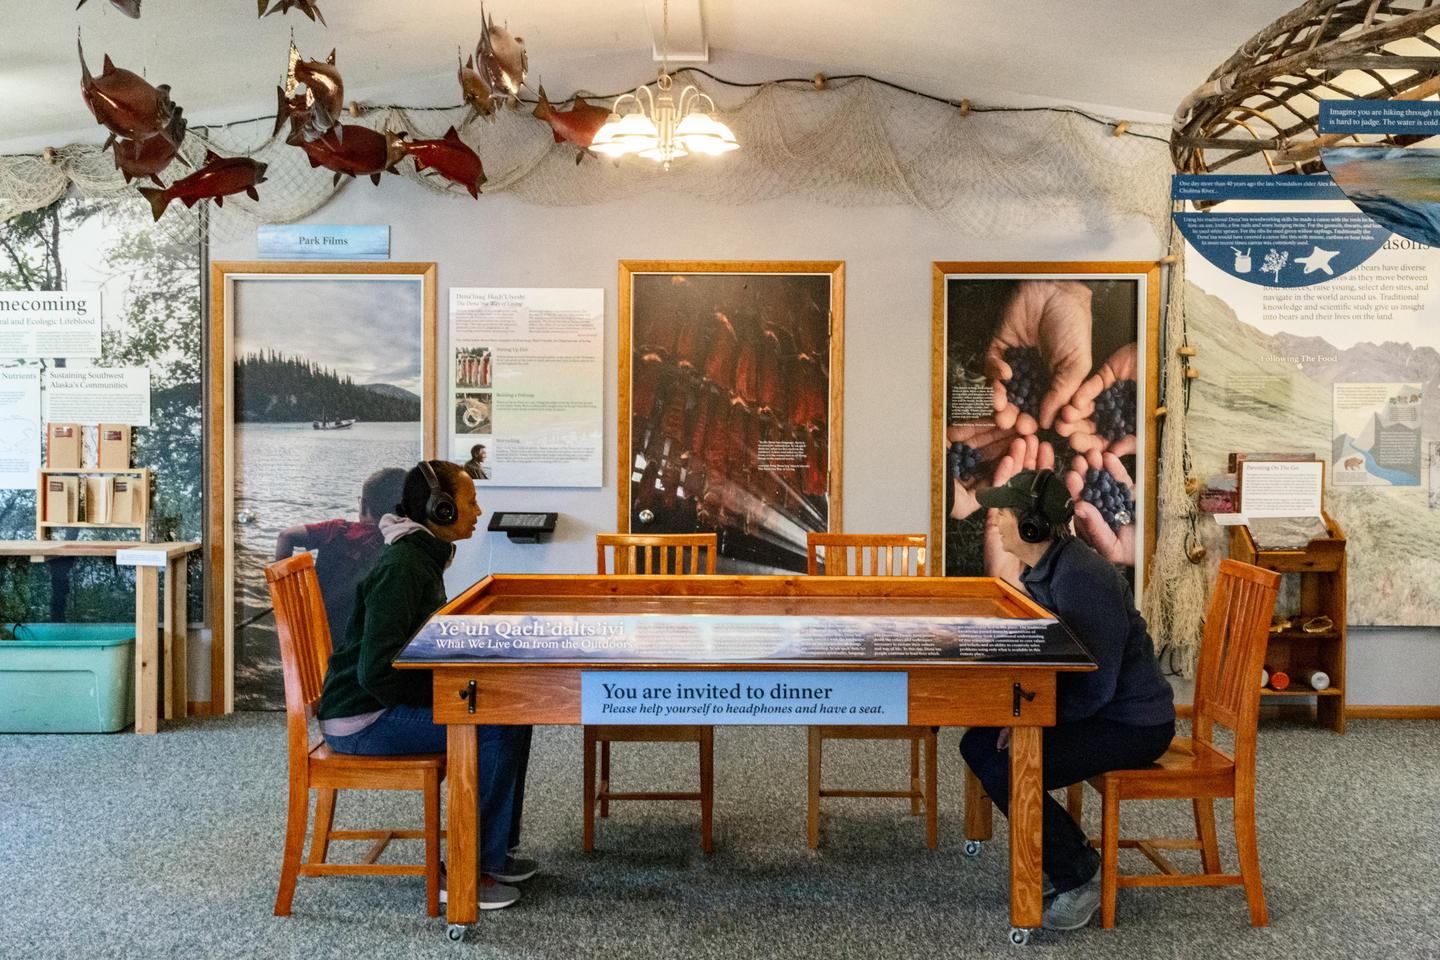 You're Invited to DinnerCome explore Dena'ina stories through a multimedia exhibit inside the visitor center.